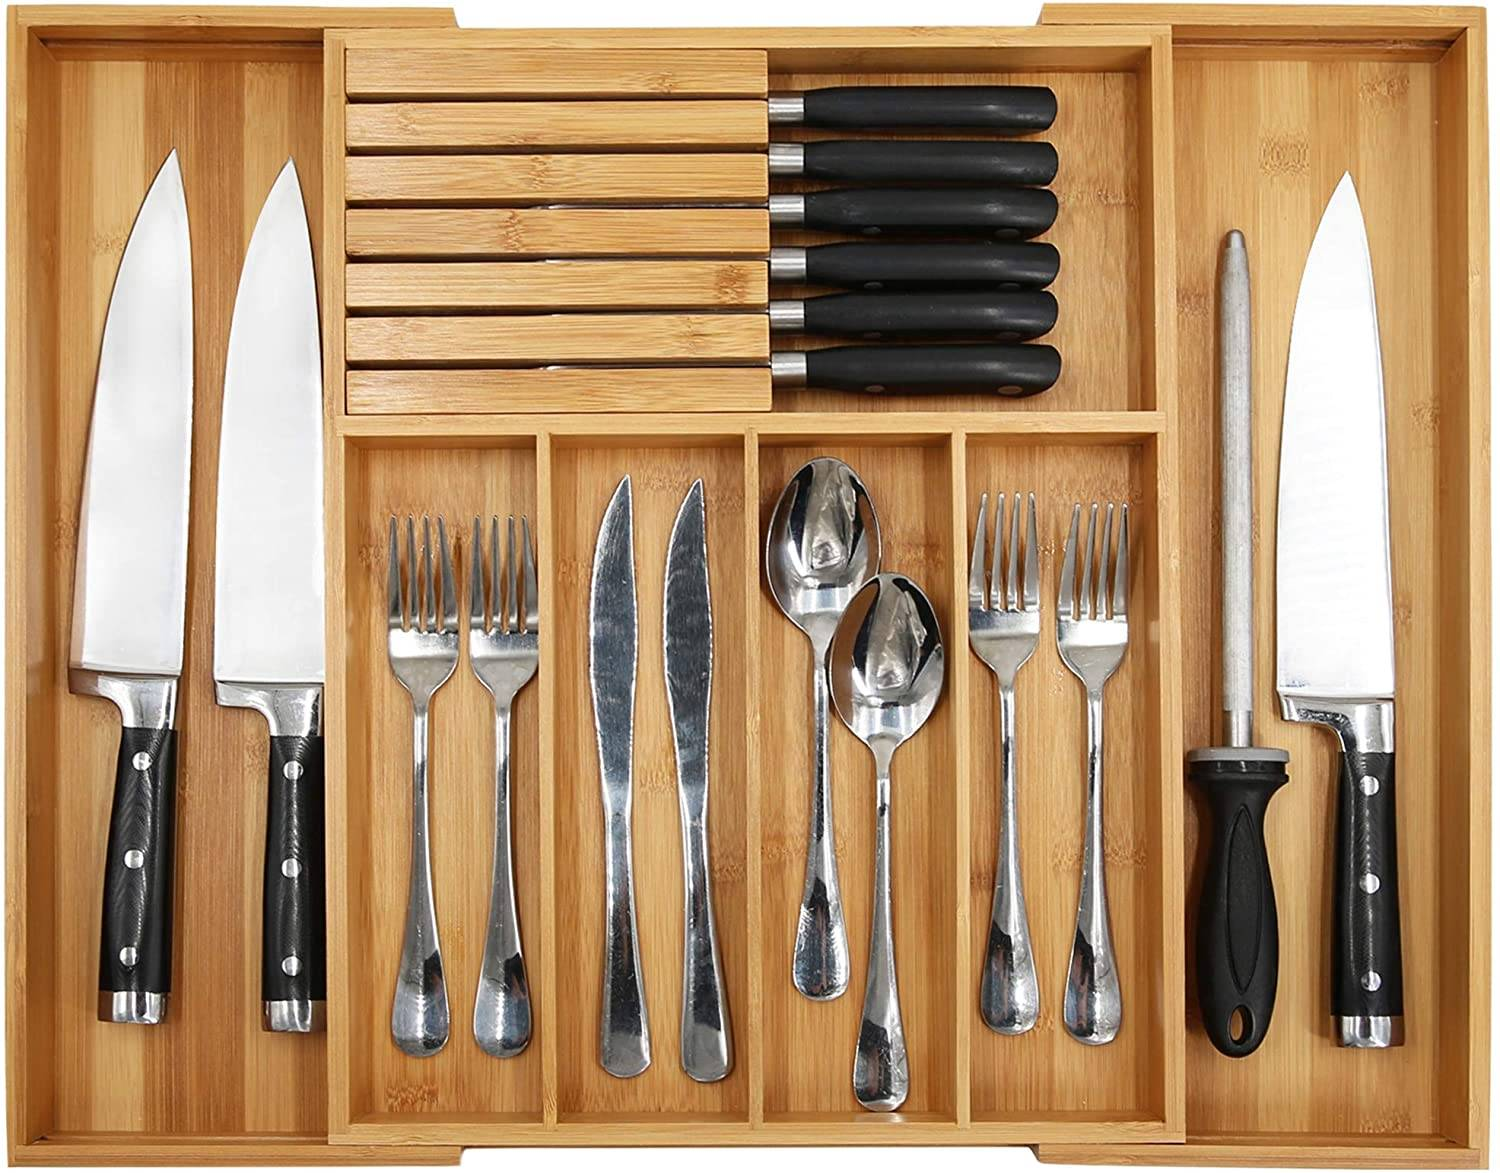 OEM Supply China Bamboo Silverware Drawer Organizer Kitchen, Expandable Utensil Holder and Cutlery Tray with Divider and Knife Block Featured Image